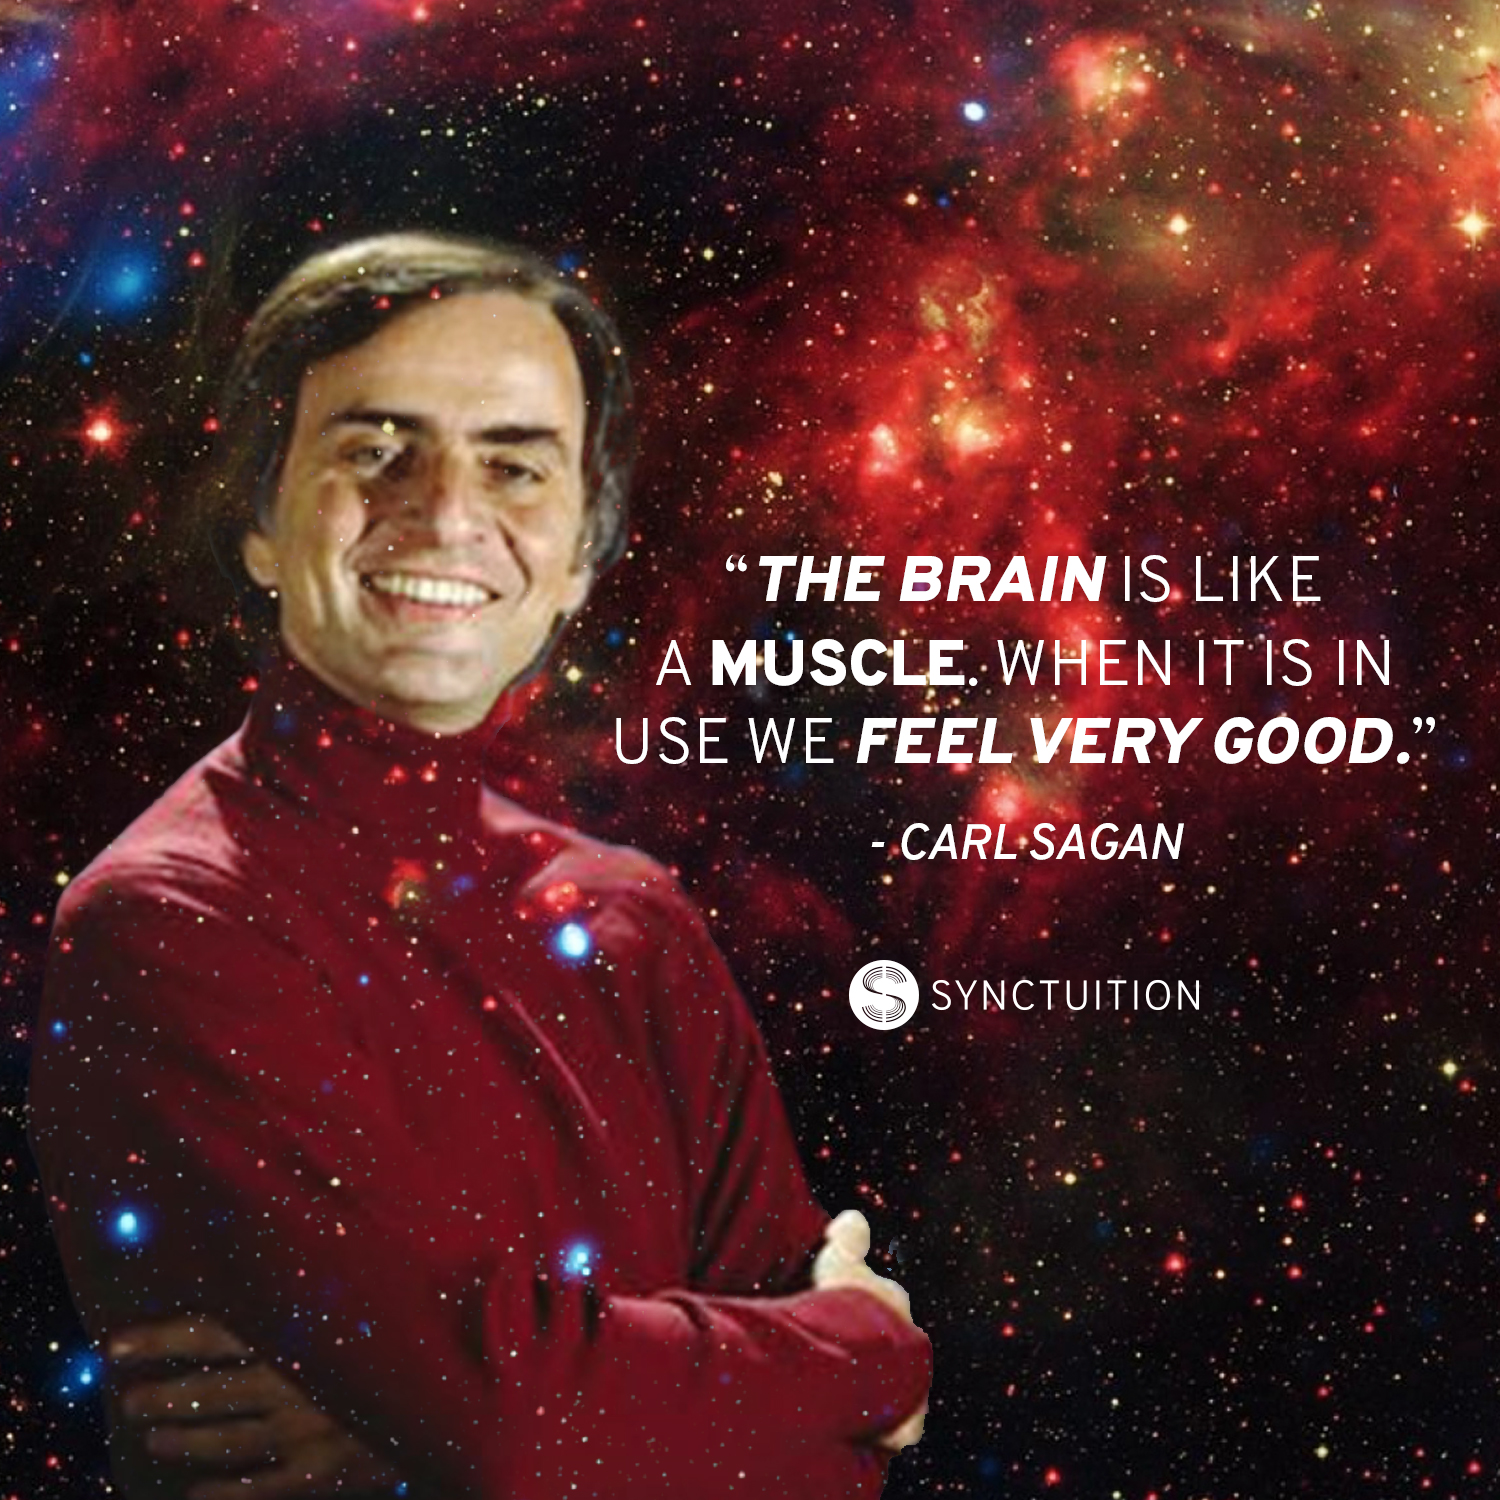 Carl Sagan quote: